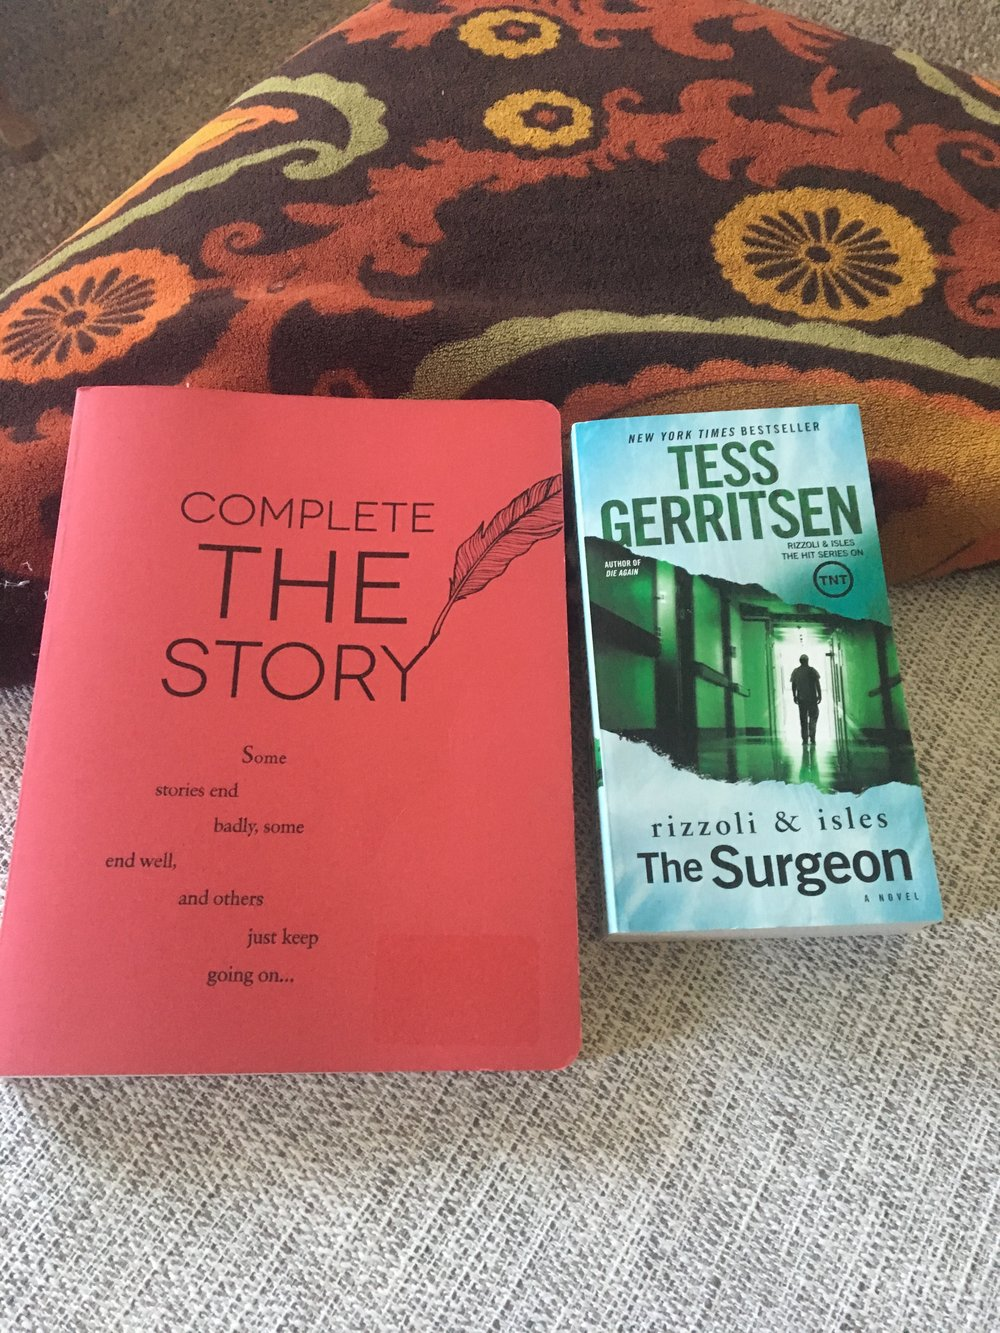 My latest Barnes and Noble book haul - I found a pretty neat prompt journal that actually looks decent. The prompts are sentences or partial paragraphs you then finish. Also, starting the Tess Gerritsen Rizzoli and Isles series.